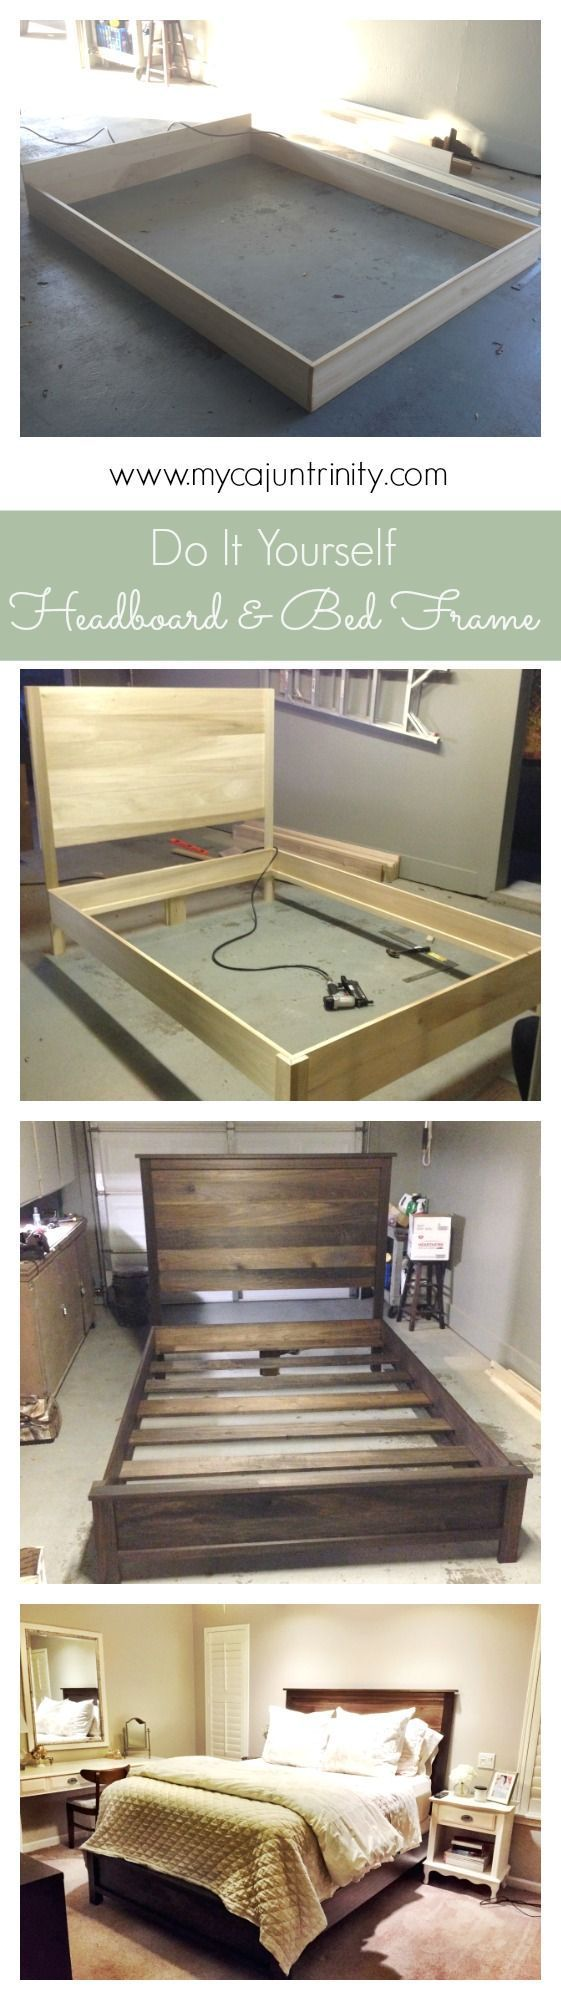 Step-by-step instructions on how to build a headboard and bed frame ...